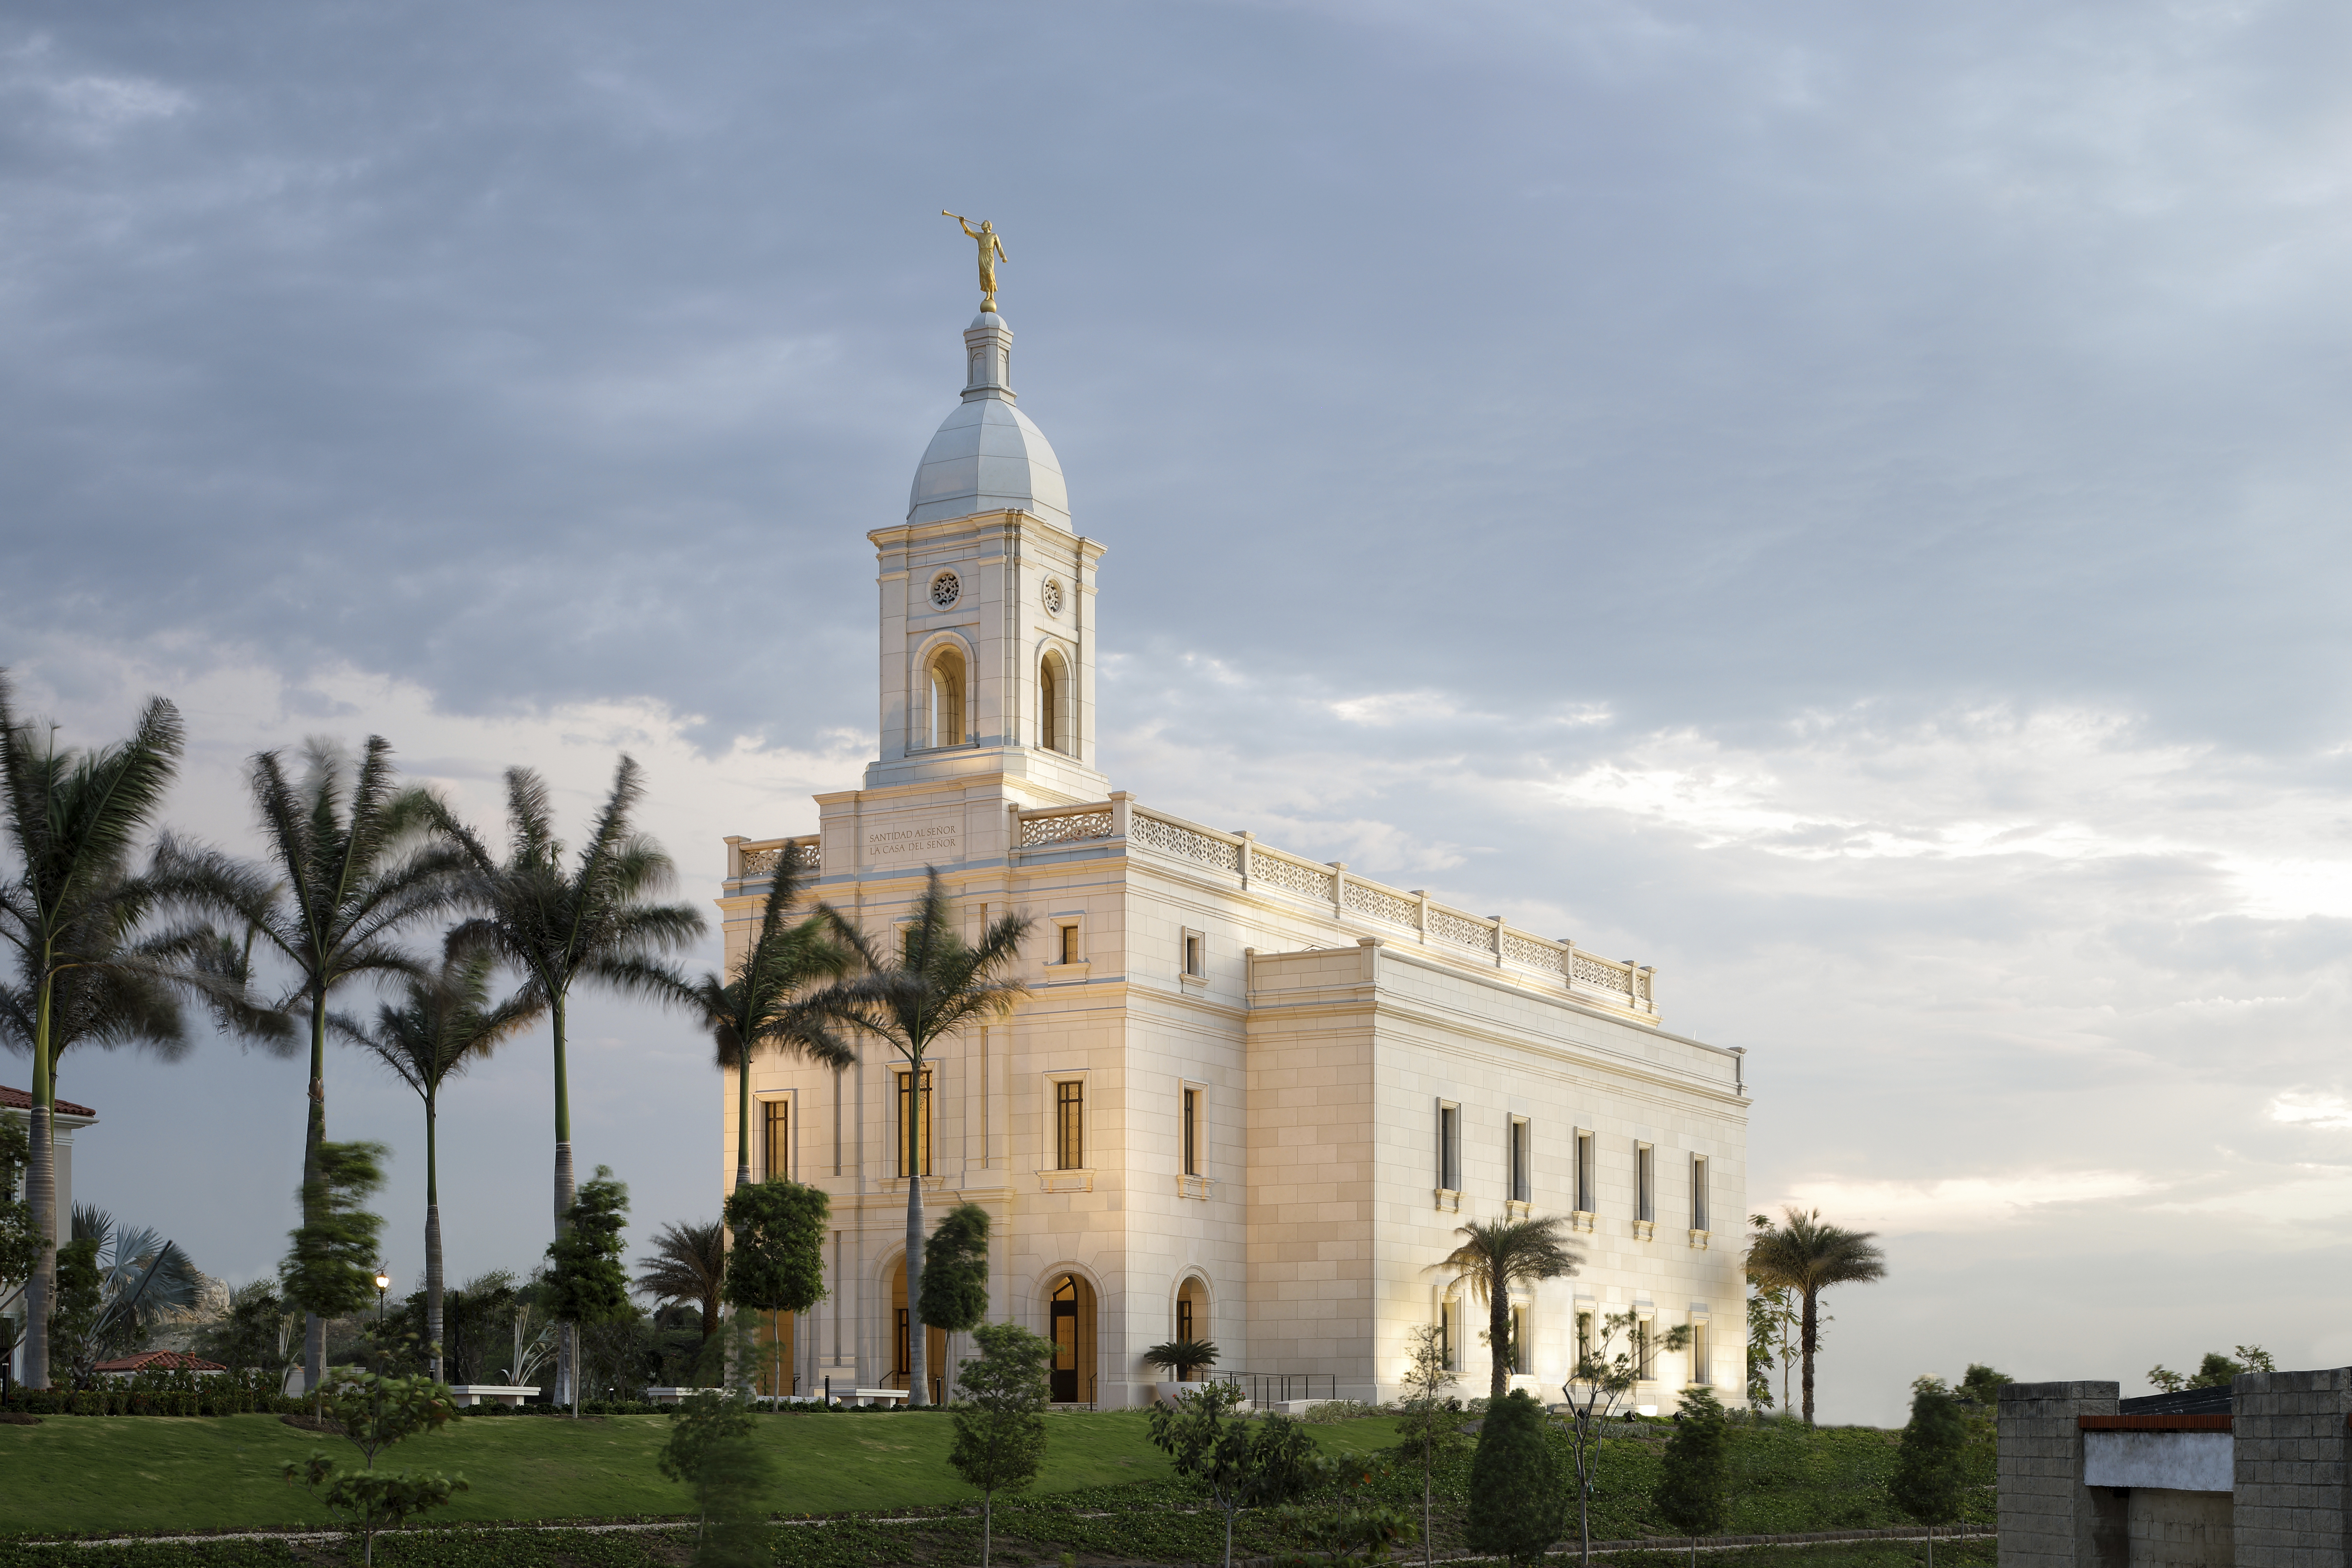 An evening picture of the Barranquilla Colombia Temple surrounded by palm trees.